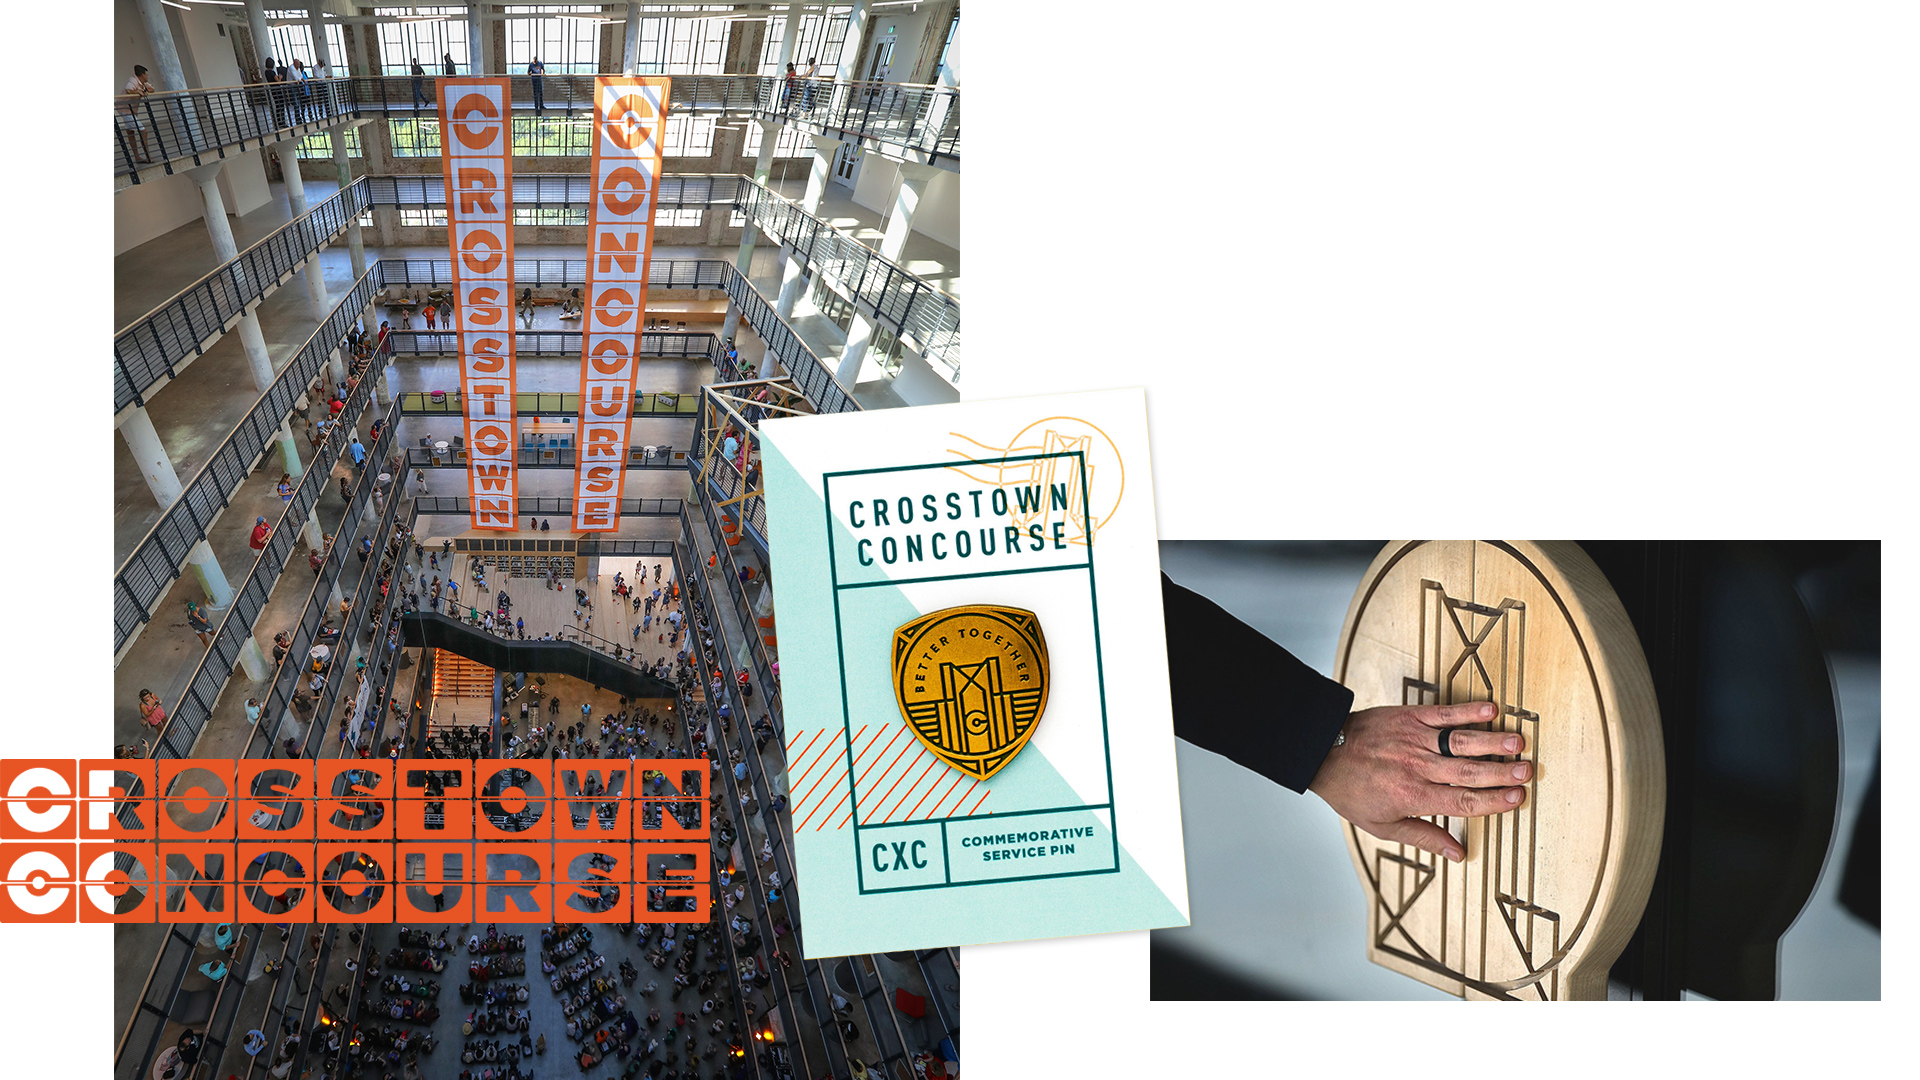 Crosstown Concourse - 90 years of history. 1.5 million square feet of renewal. All hands on deck.